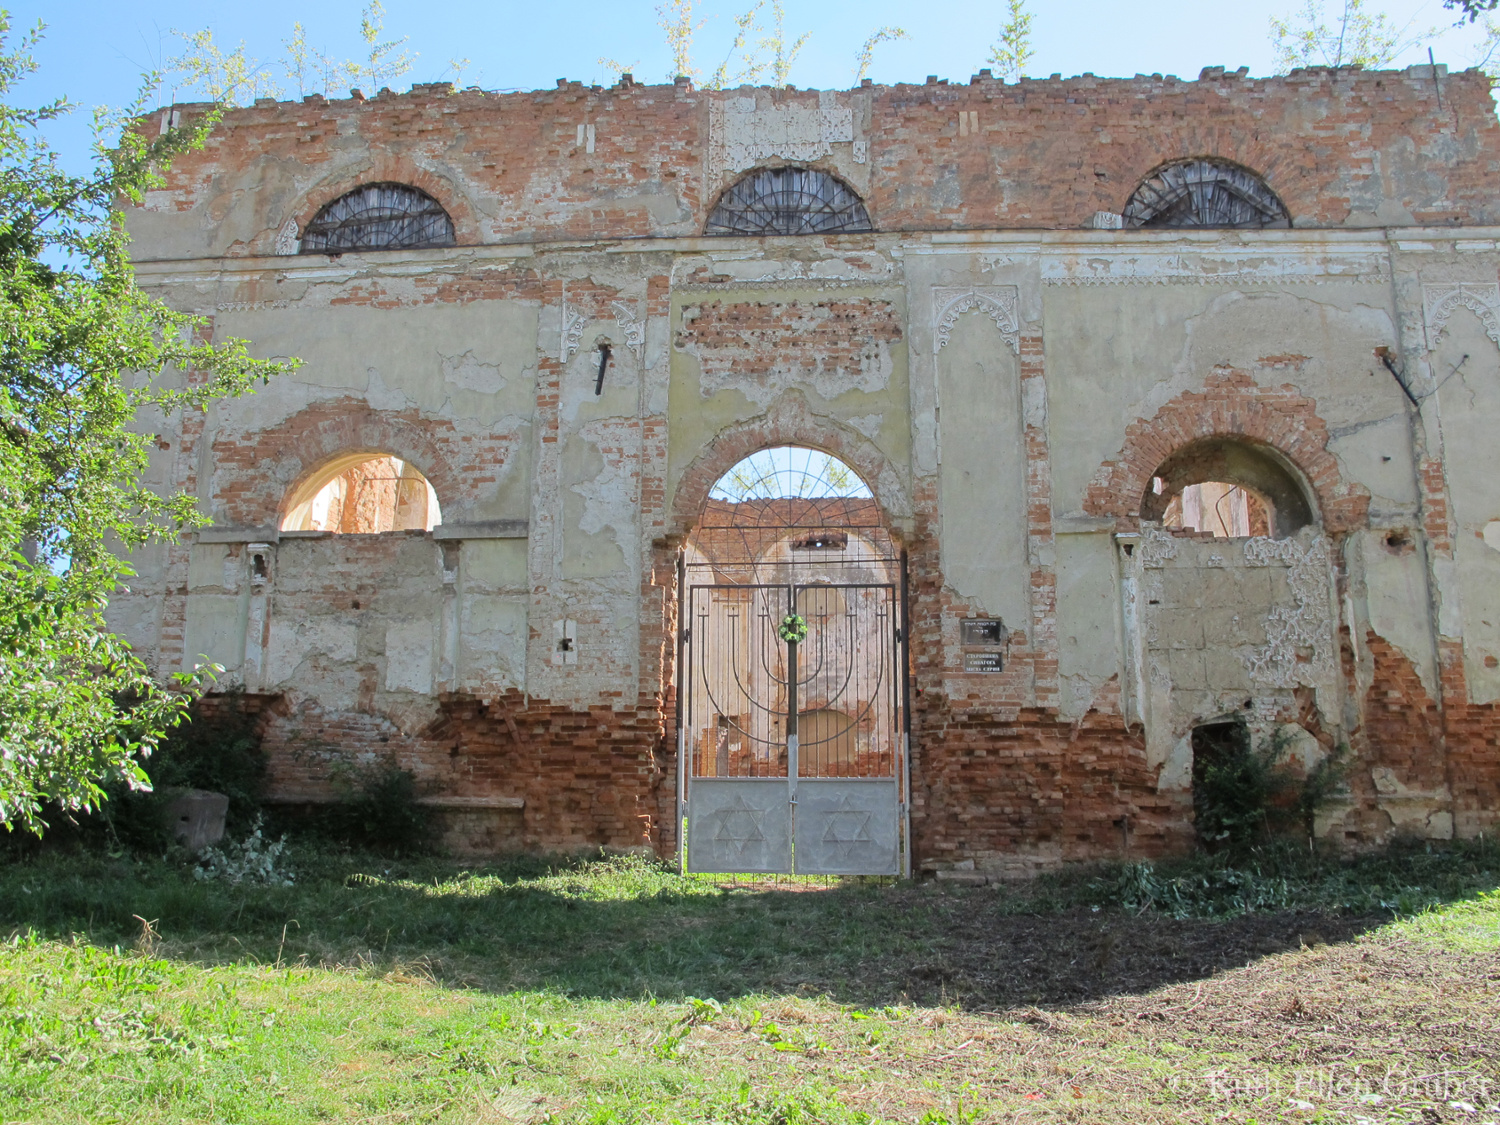 Synagogue ruin in Stryi, Ukraine, following the July 28, 2017 volunteer clean up of vegetation